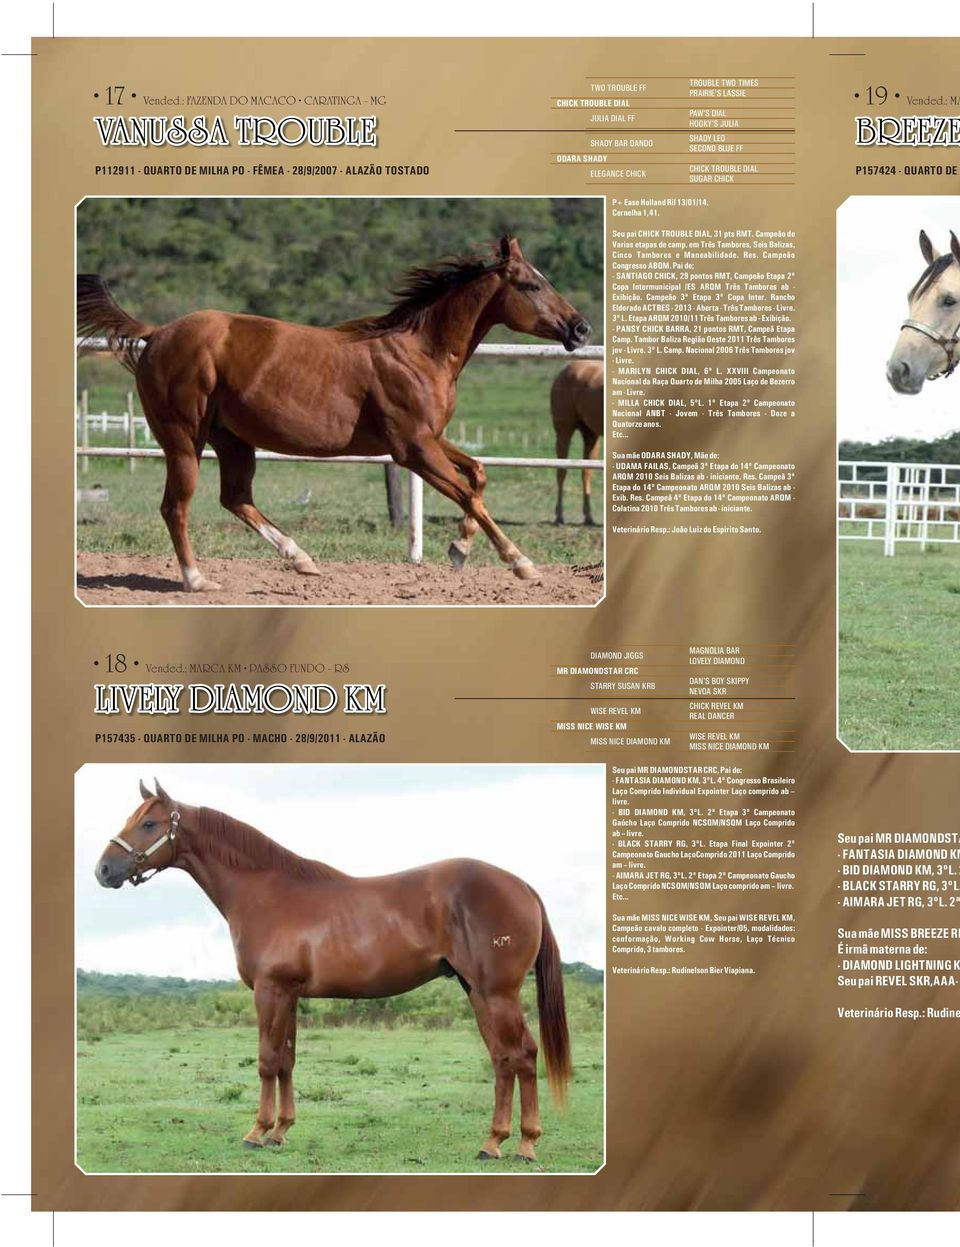 ELEGANCE CHICK TROUBLE TWO TIMES PRAIRIE'S LASSIE PAW'S DIAL HOOKY'S JULIA SHADY LEO SECOND BLUE FF CHICK TROUBLE DIAL SUGAR CHICK 19 Vended.